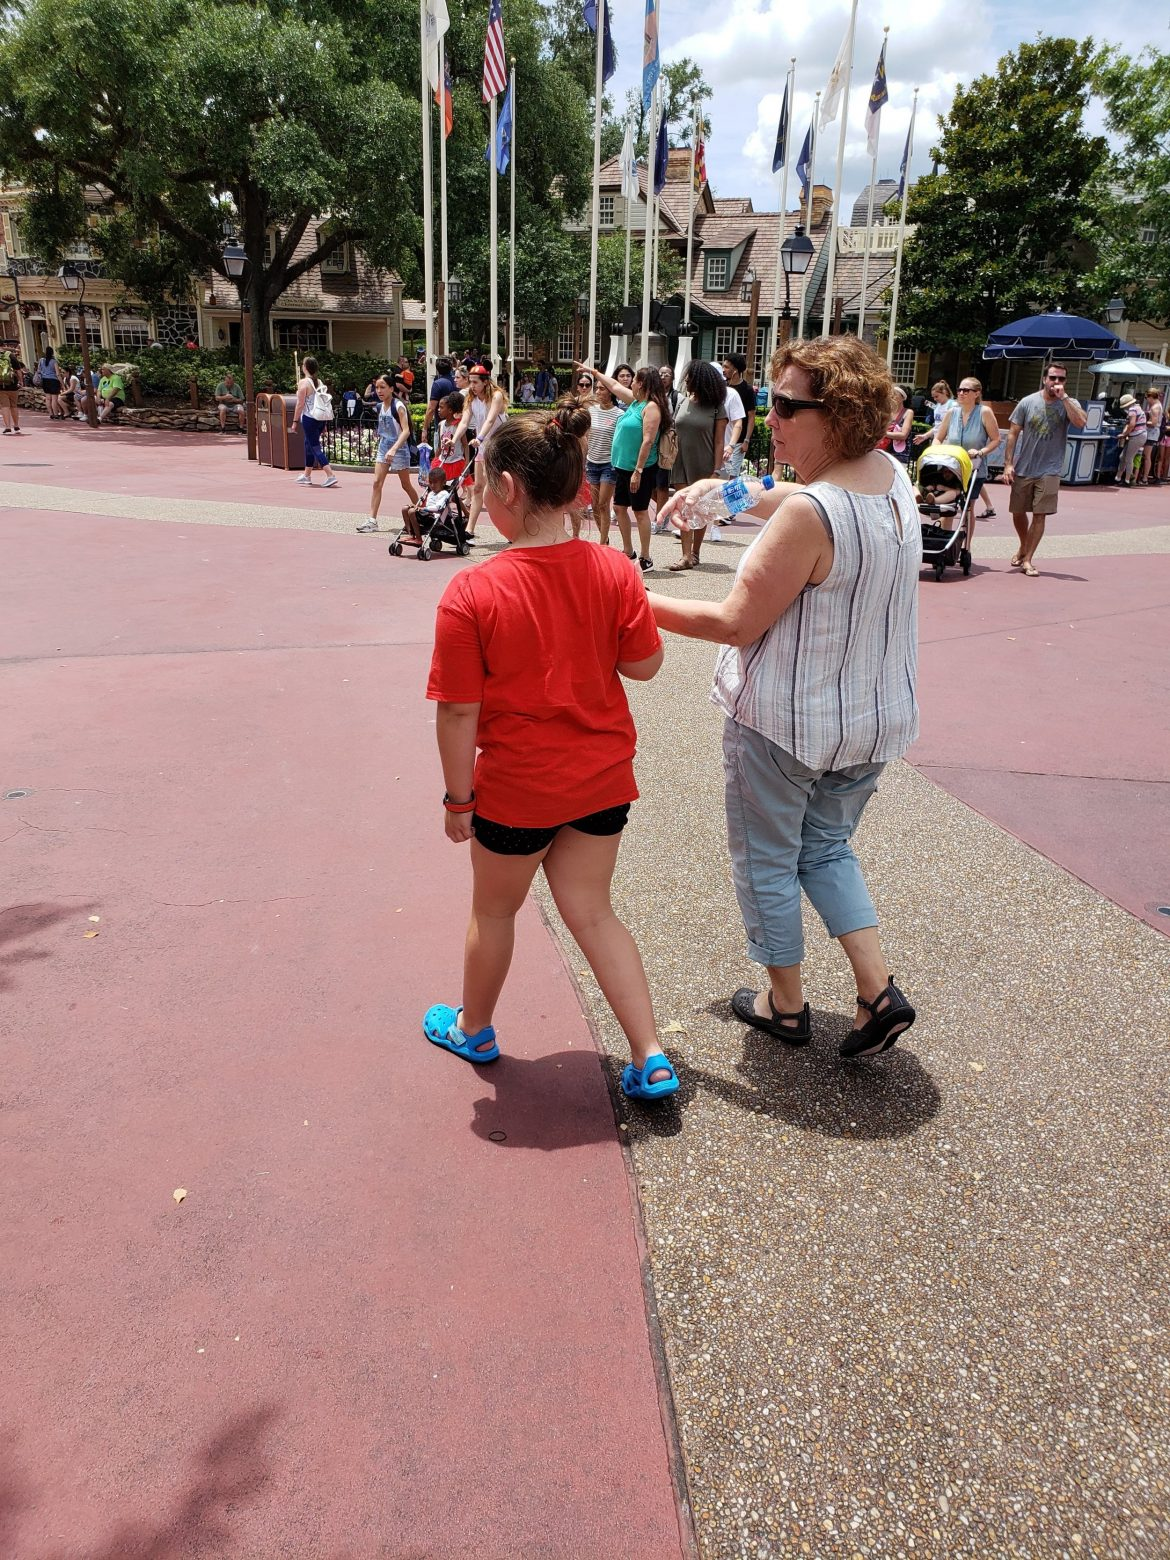 Three Things I Learned at Walt Disney World